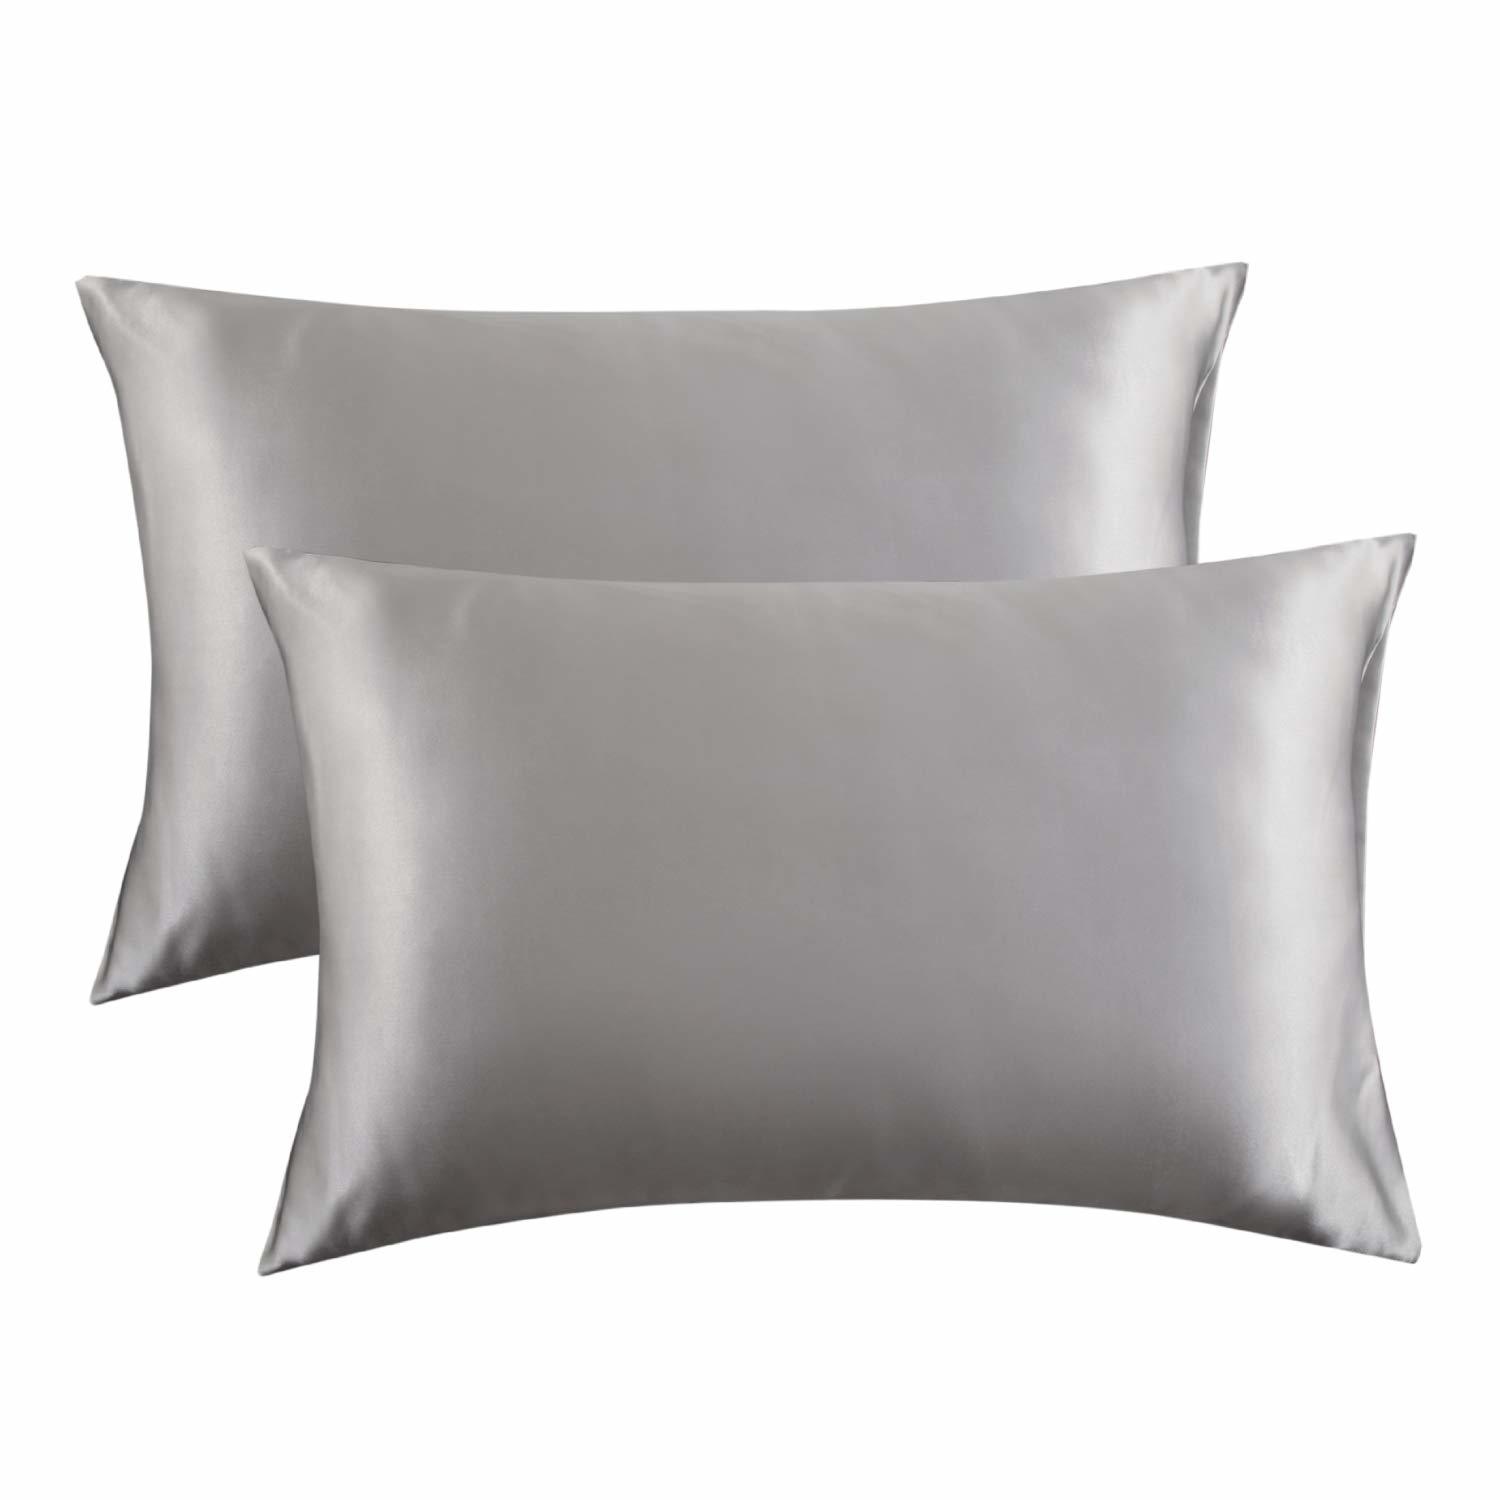 Bedsure-Satin-Pillowcase